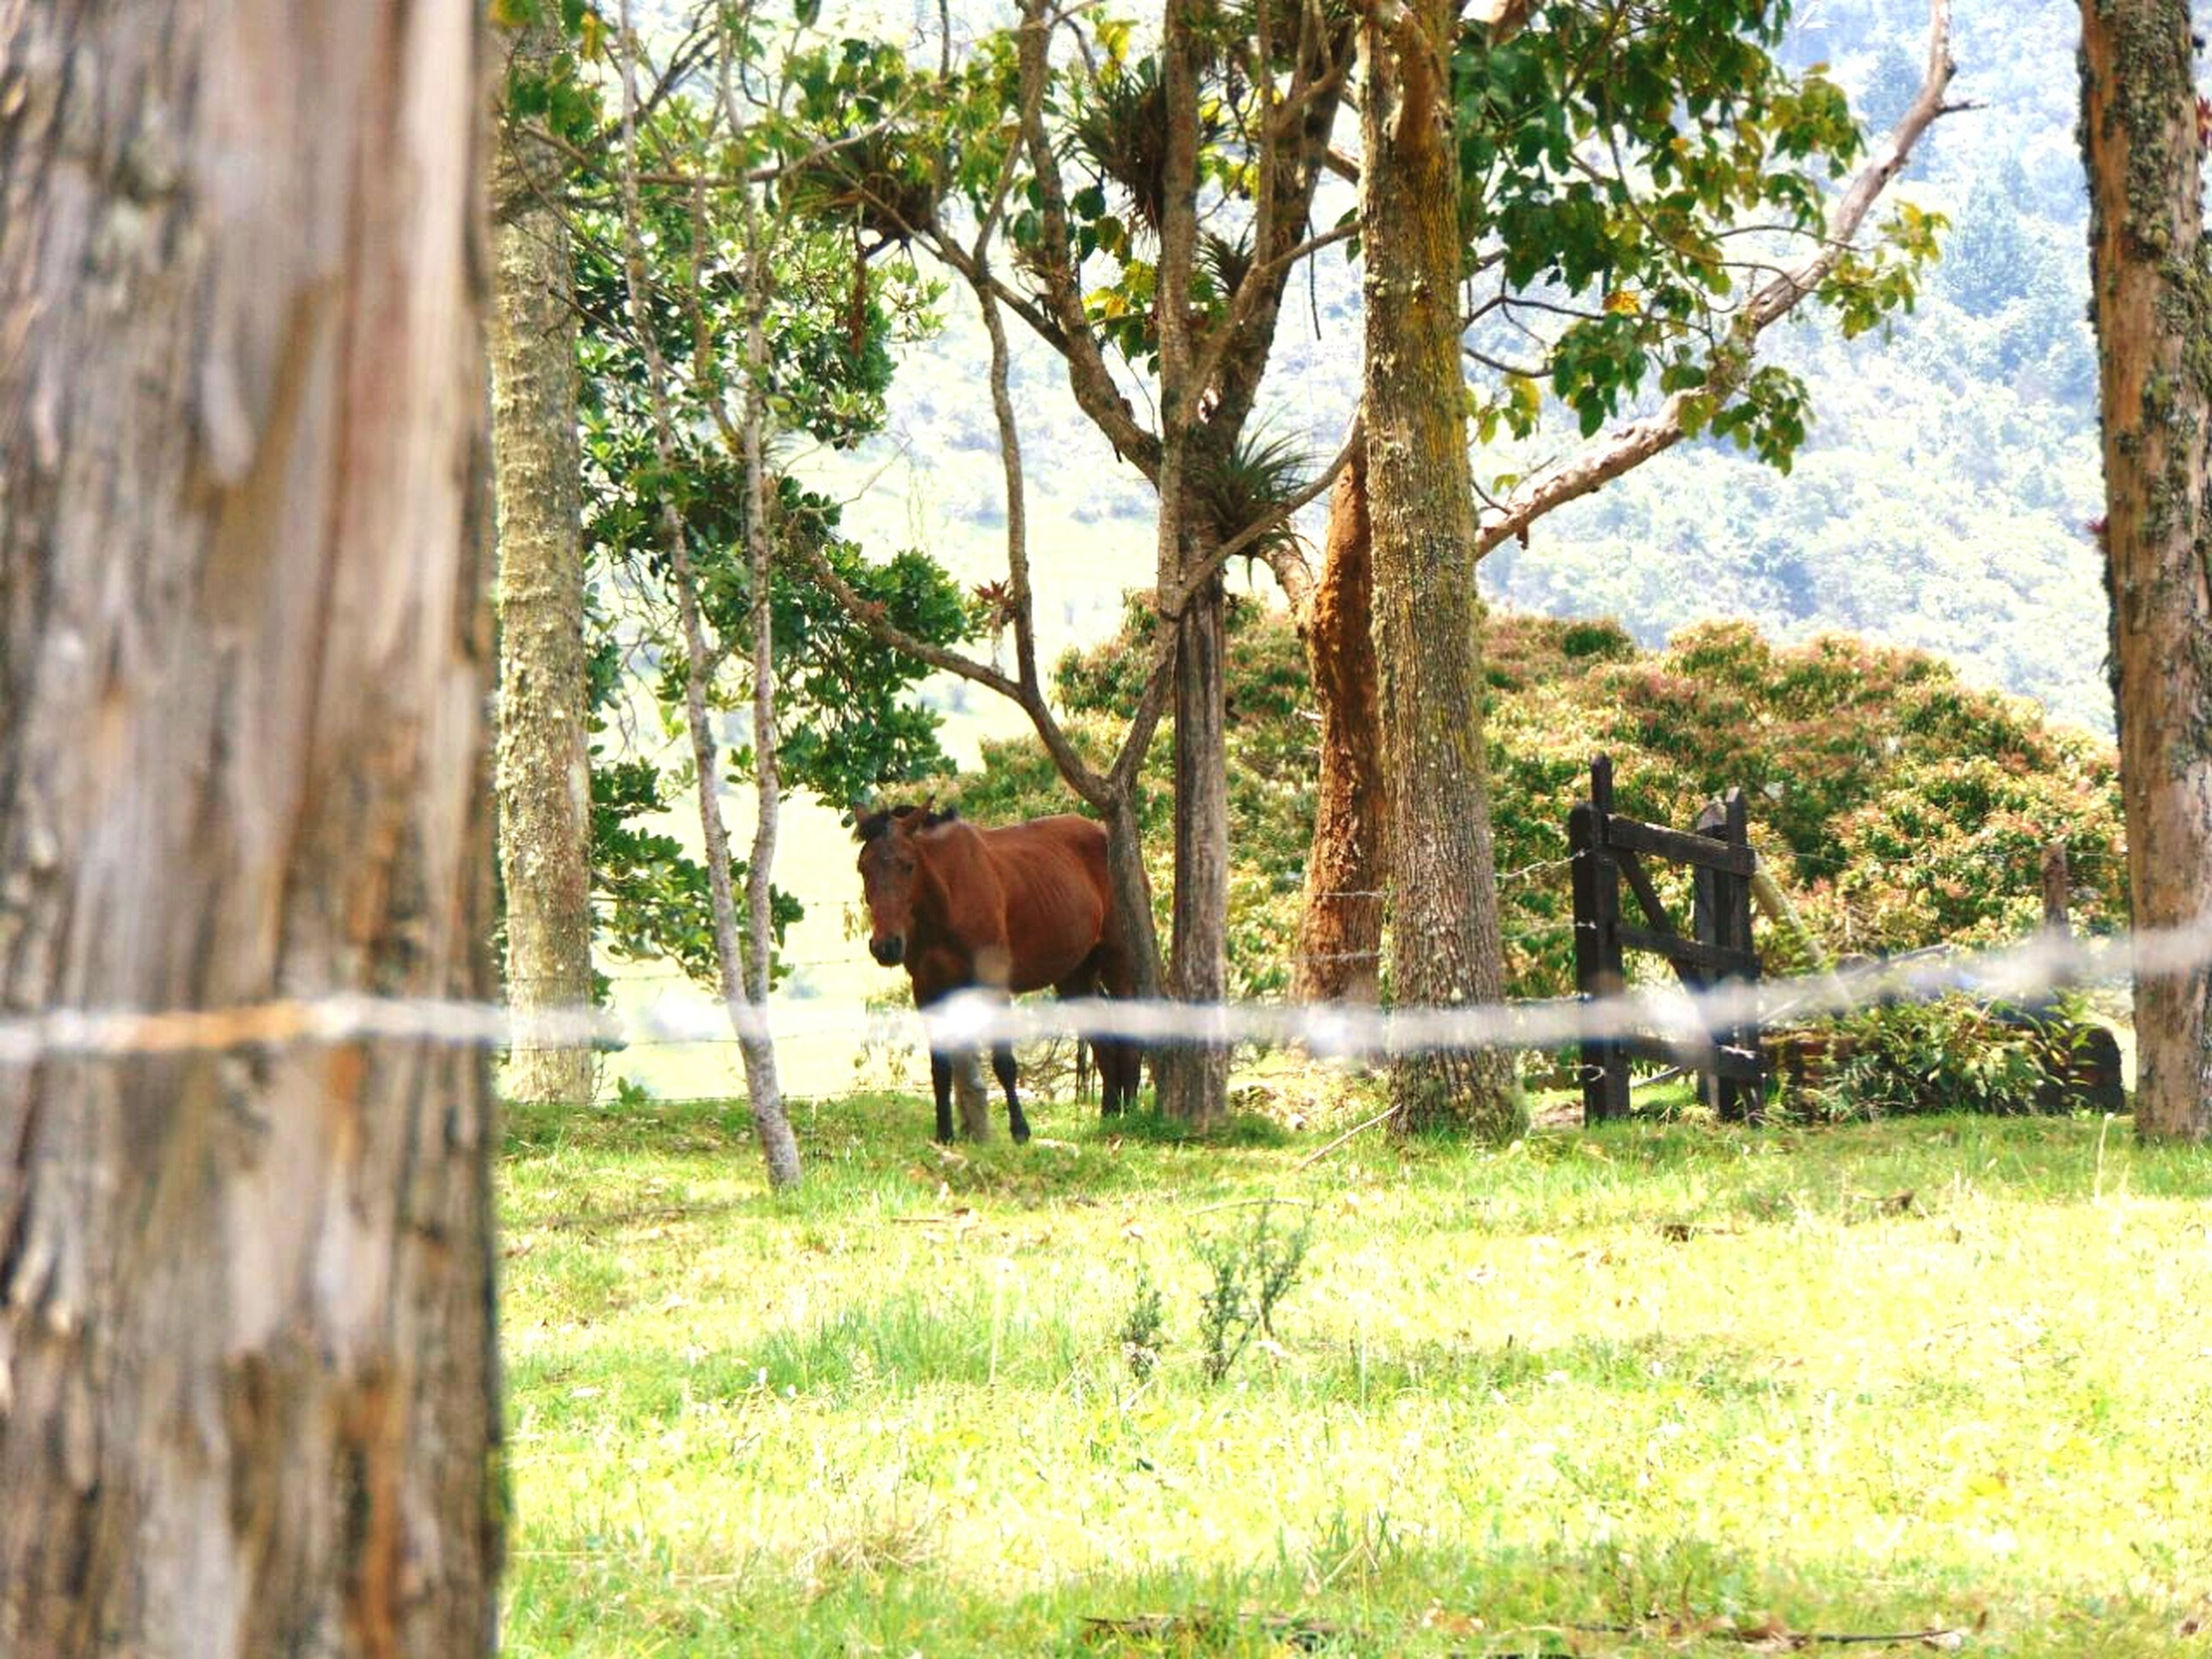 animal themes, tree, mammal, domestic animals, livestock, one animal, fence, horse, herbivorous, green color, tree trunk, growth, grass, wildlife, grazing, standing, nature, two animals, cow, day